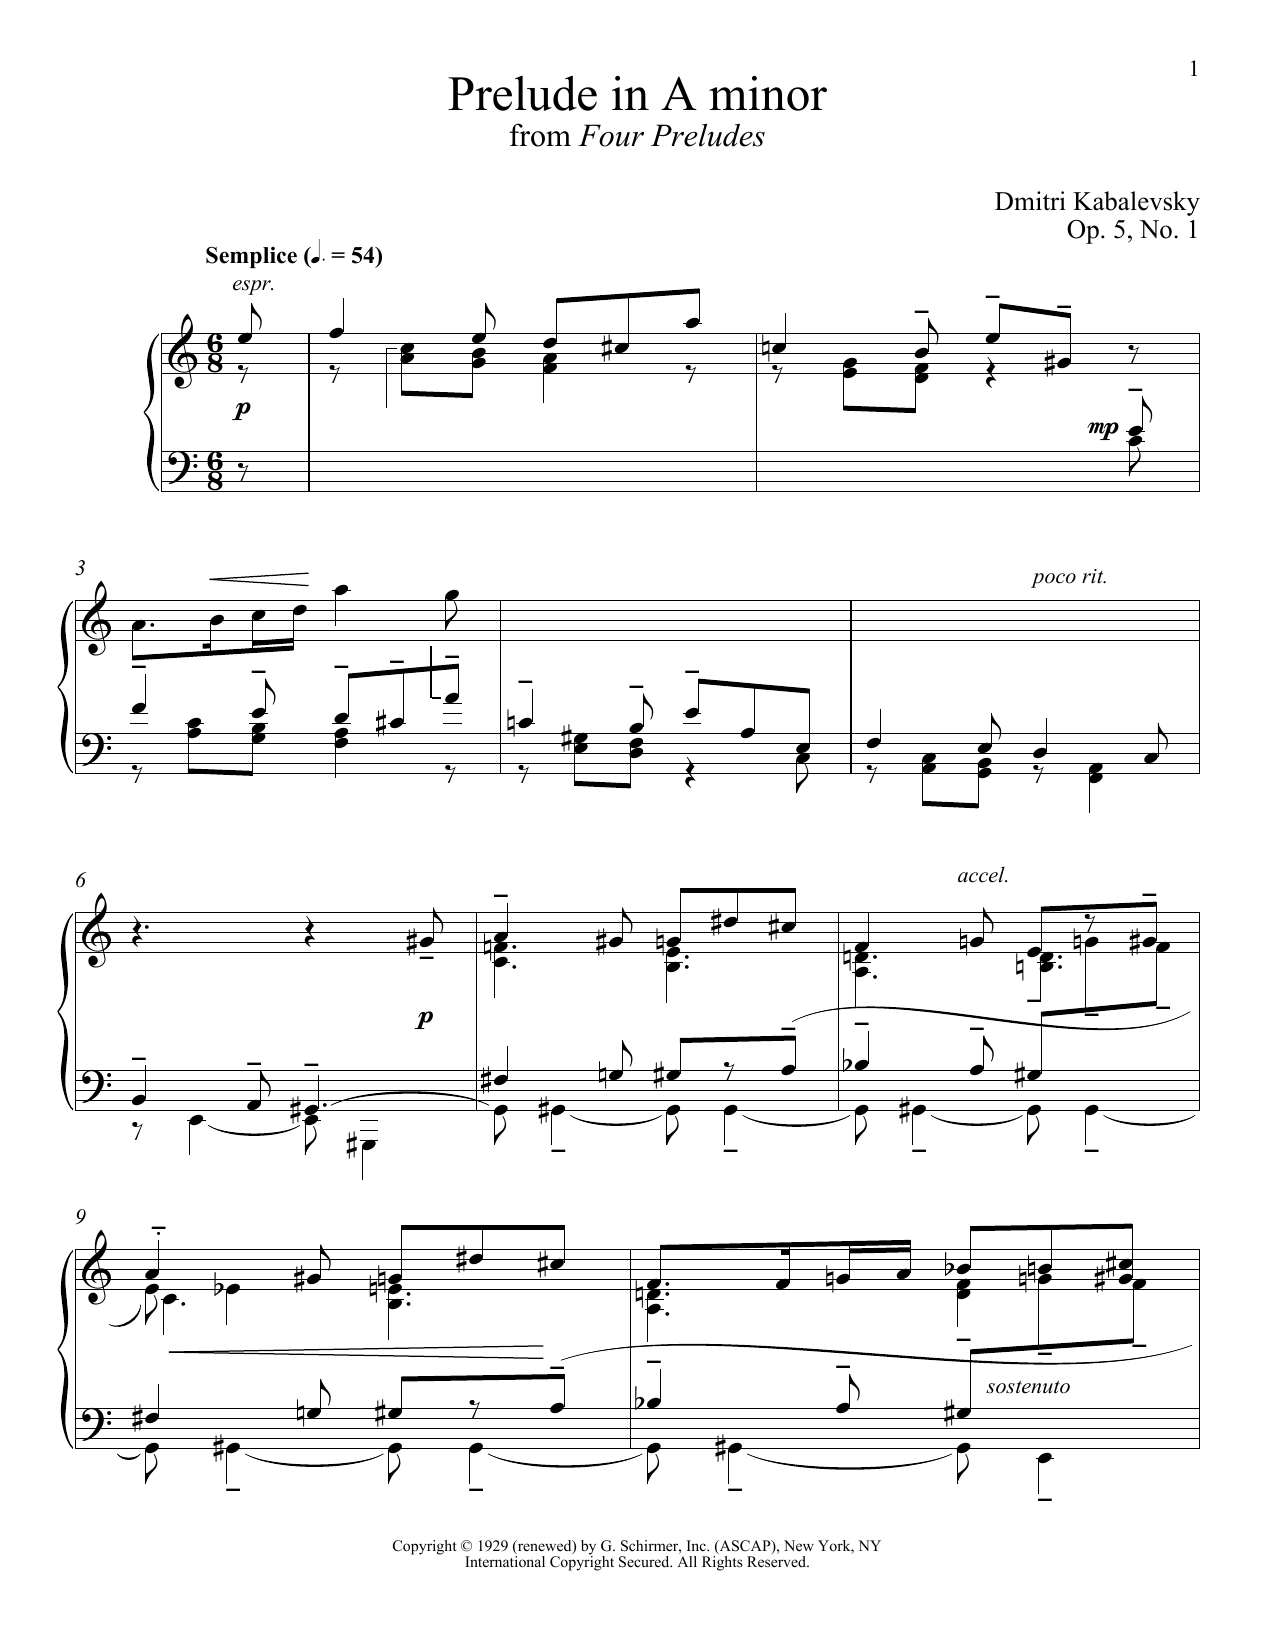 Dmitri Kabalevsky Prelude In A Minor, Op. 5, No. 1 sheet music notes and chords. Download Printable PDF.